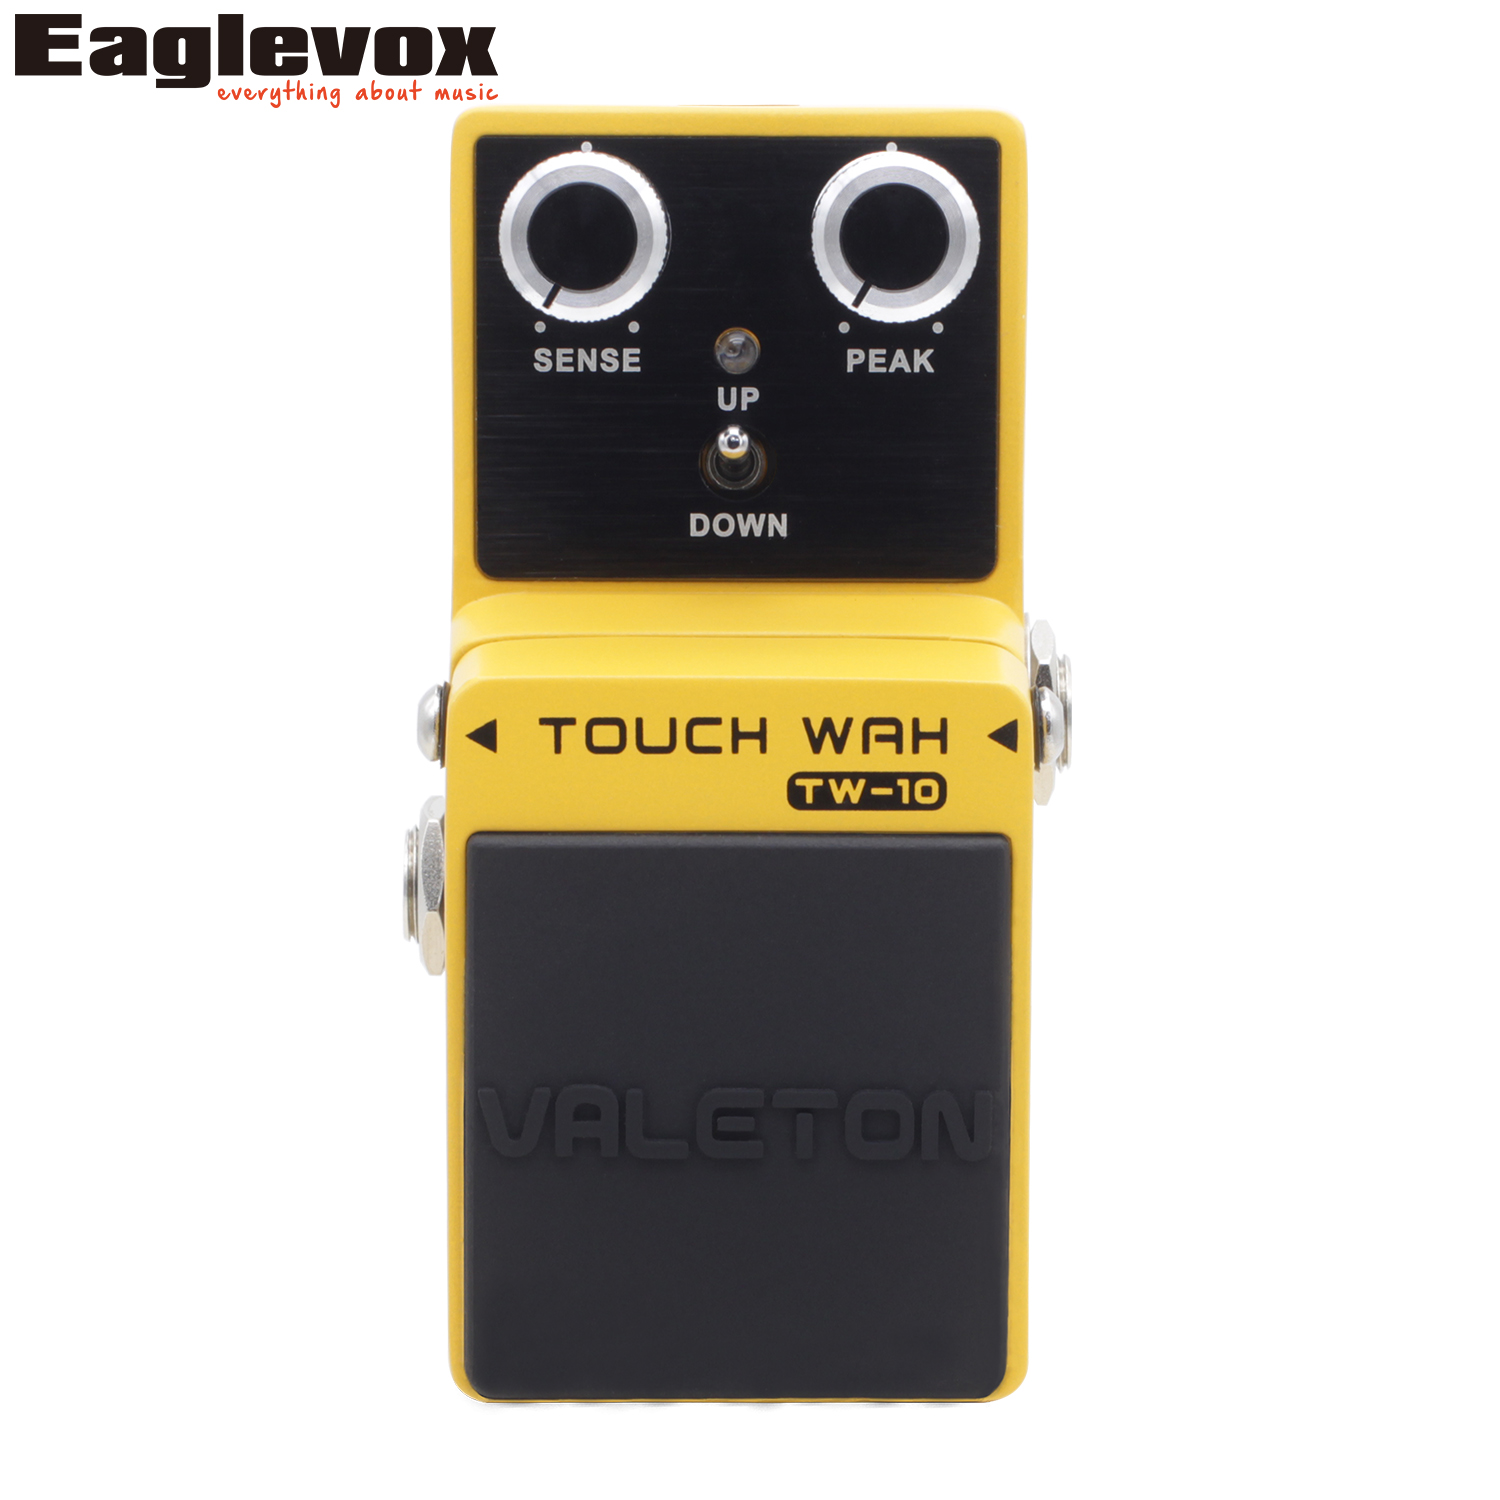 Valeton TW-10 Touch Wah Guitar Effect Pedal Buffer Bypass Analog Auto Wah Effects for Electric Guitar and Bass капли для кошек inspector от внешних и внутренних паразитов 1 пипетка